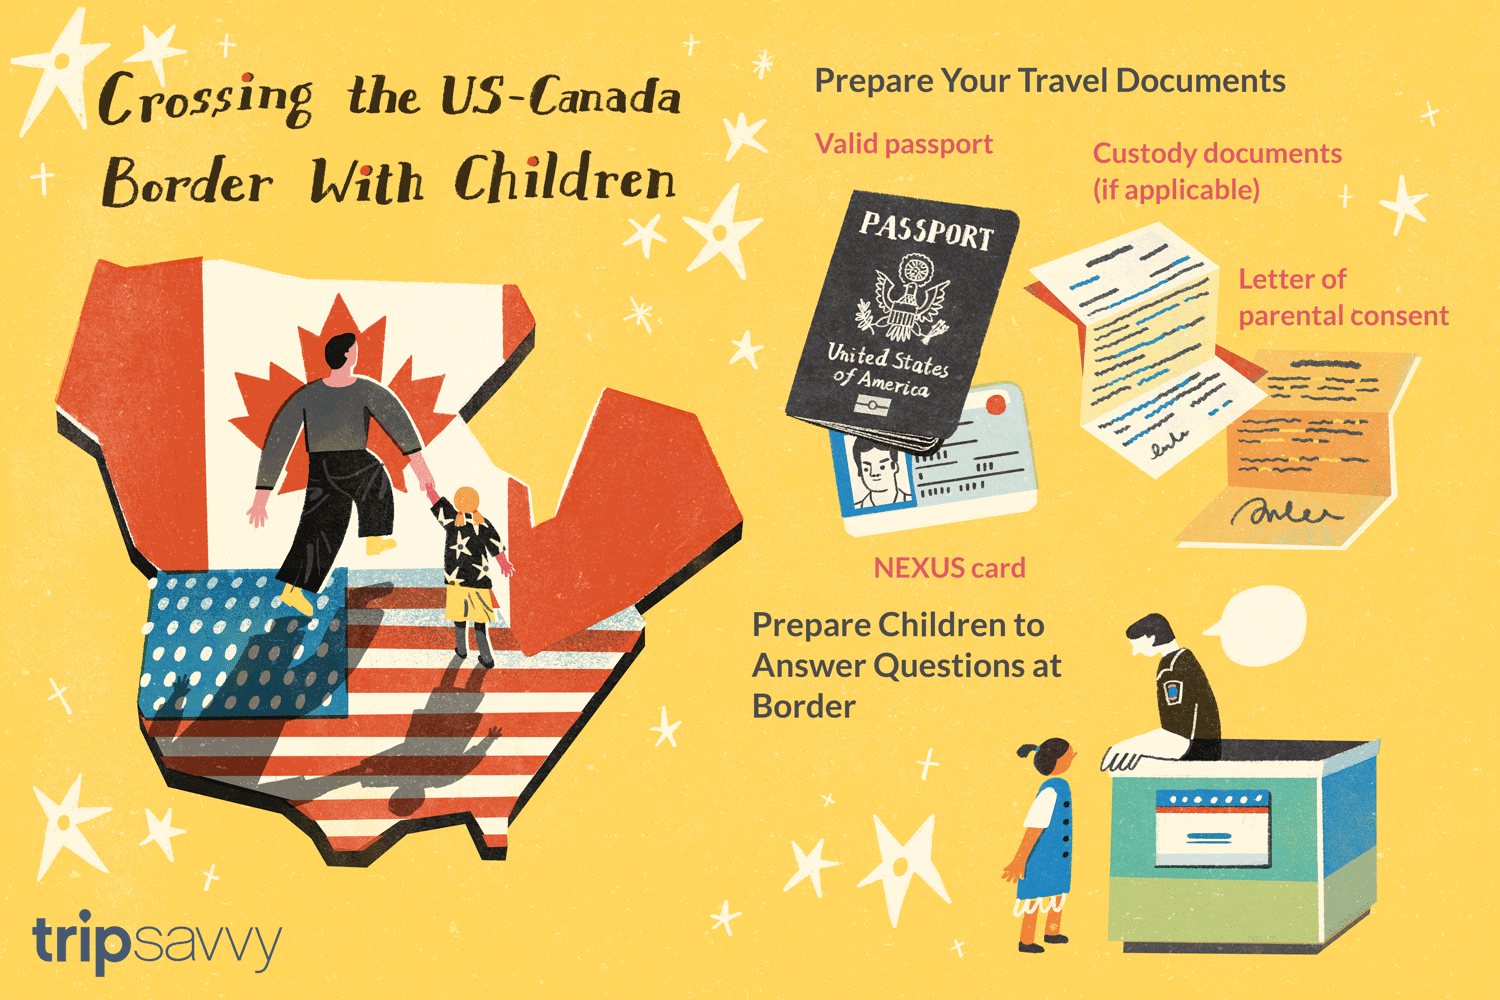 How to Cross the Canadian-U.S. Border With Children